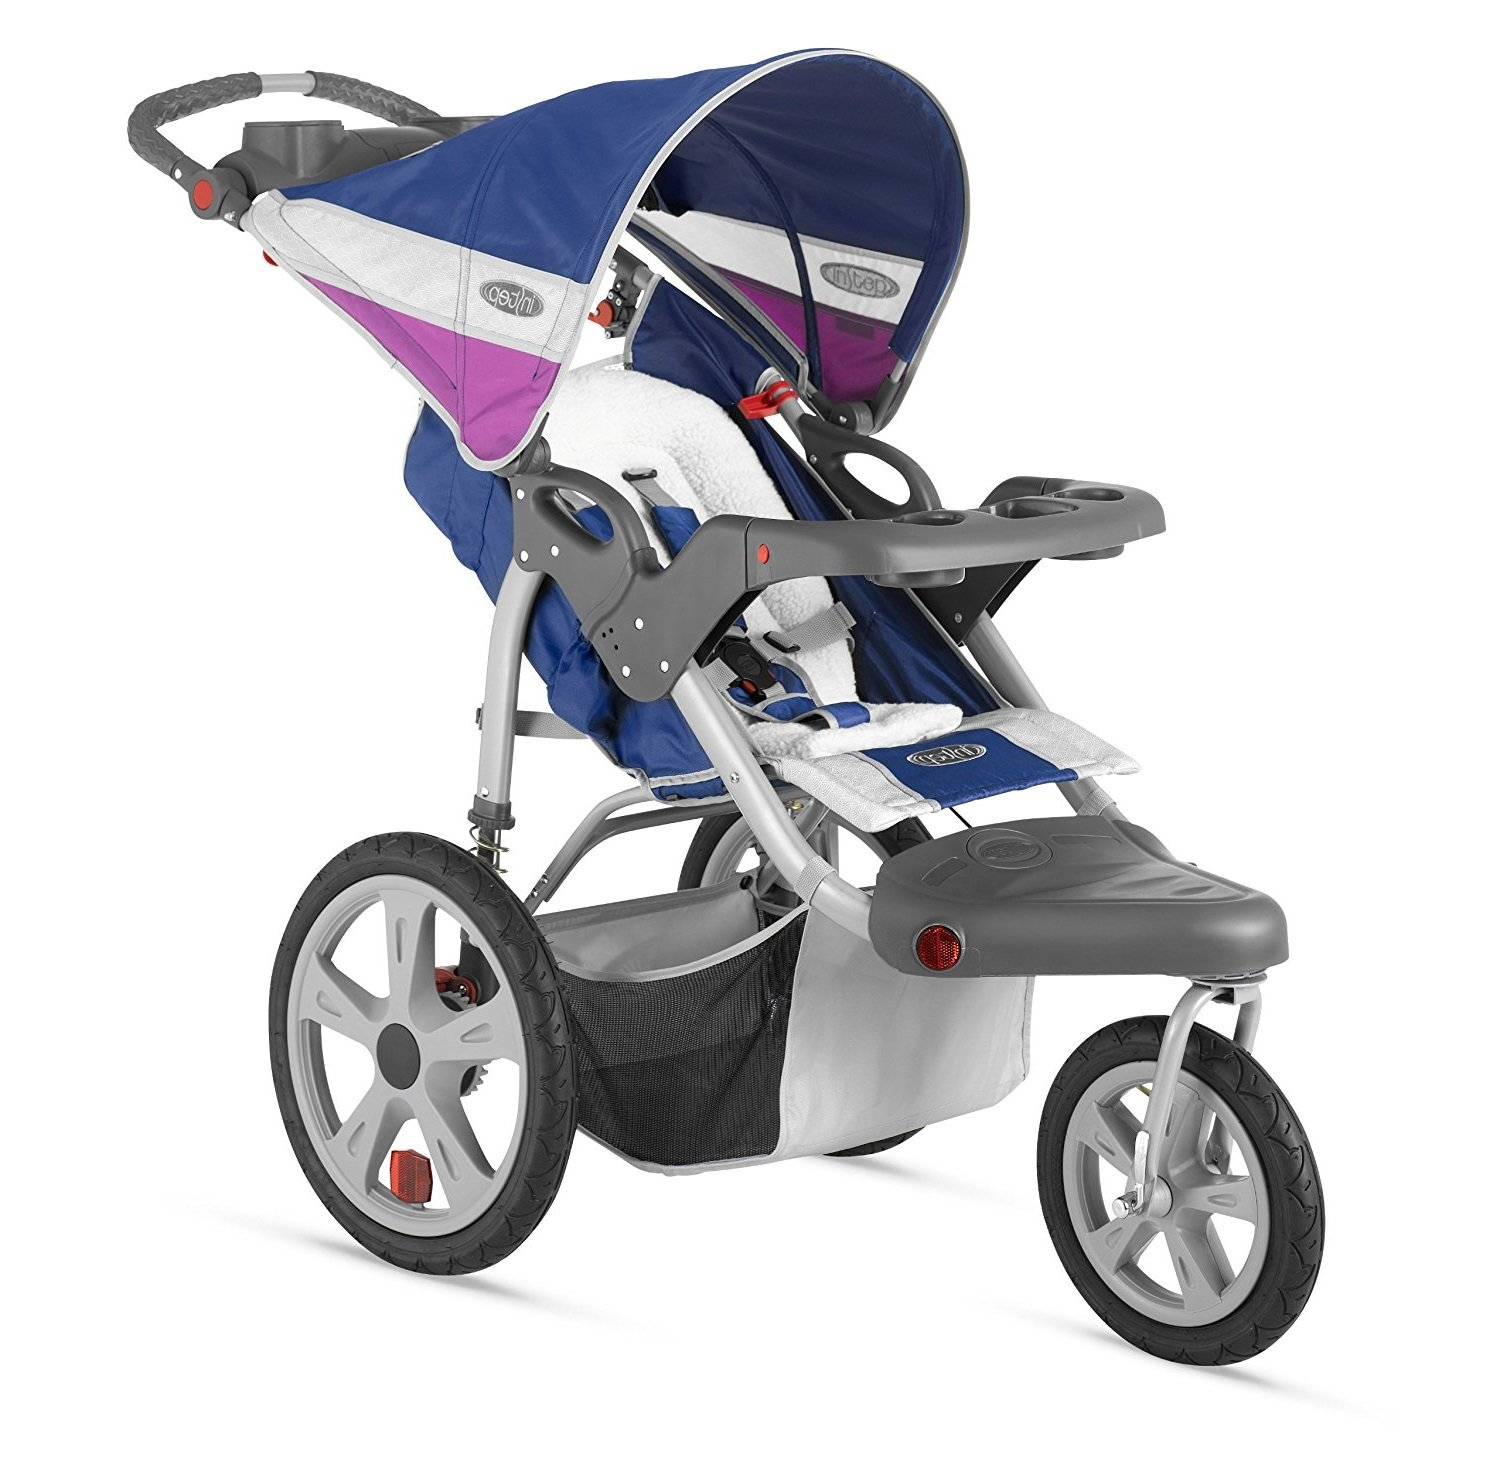 Premium Baby Stroller Jogger With Pneumatic Air Tires , Large Canopy and Storage Basket For Infants, Toddlers And Kids, Blue-Grape Color